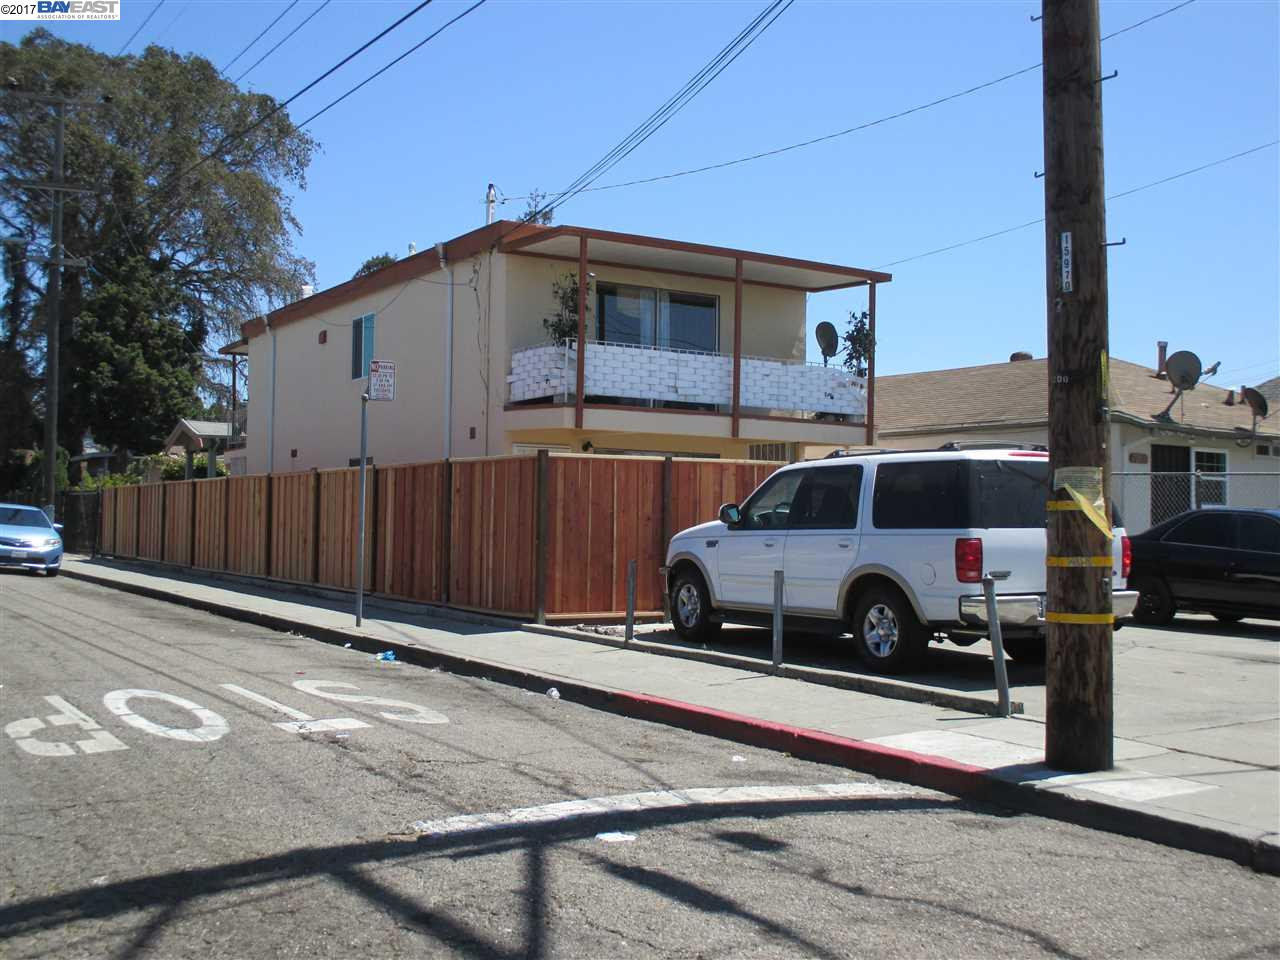 Additional photo for property listing at 7200 Herbert Guice  Oakland, California 94621 United States